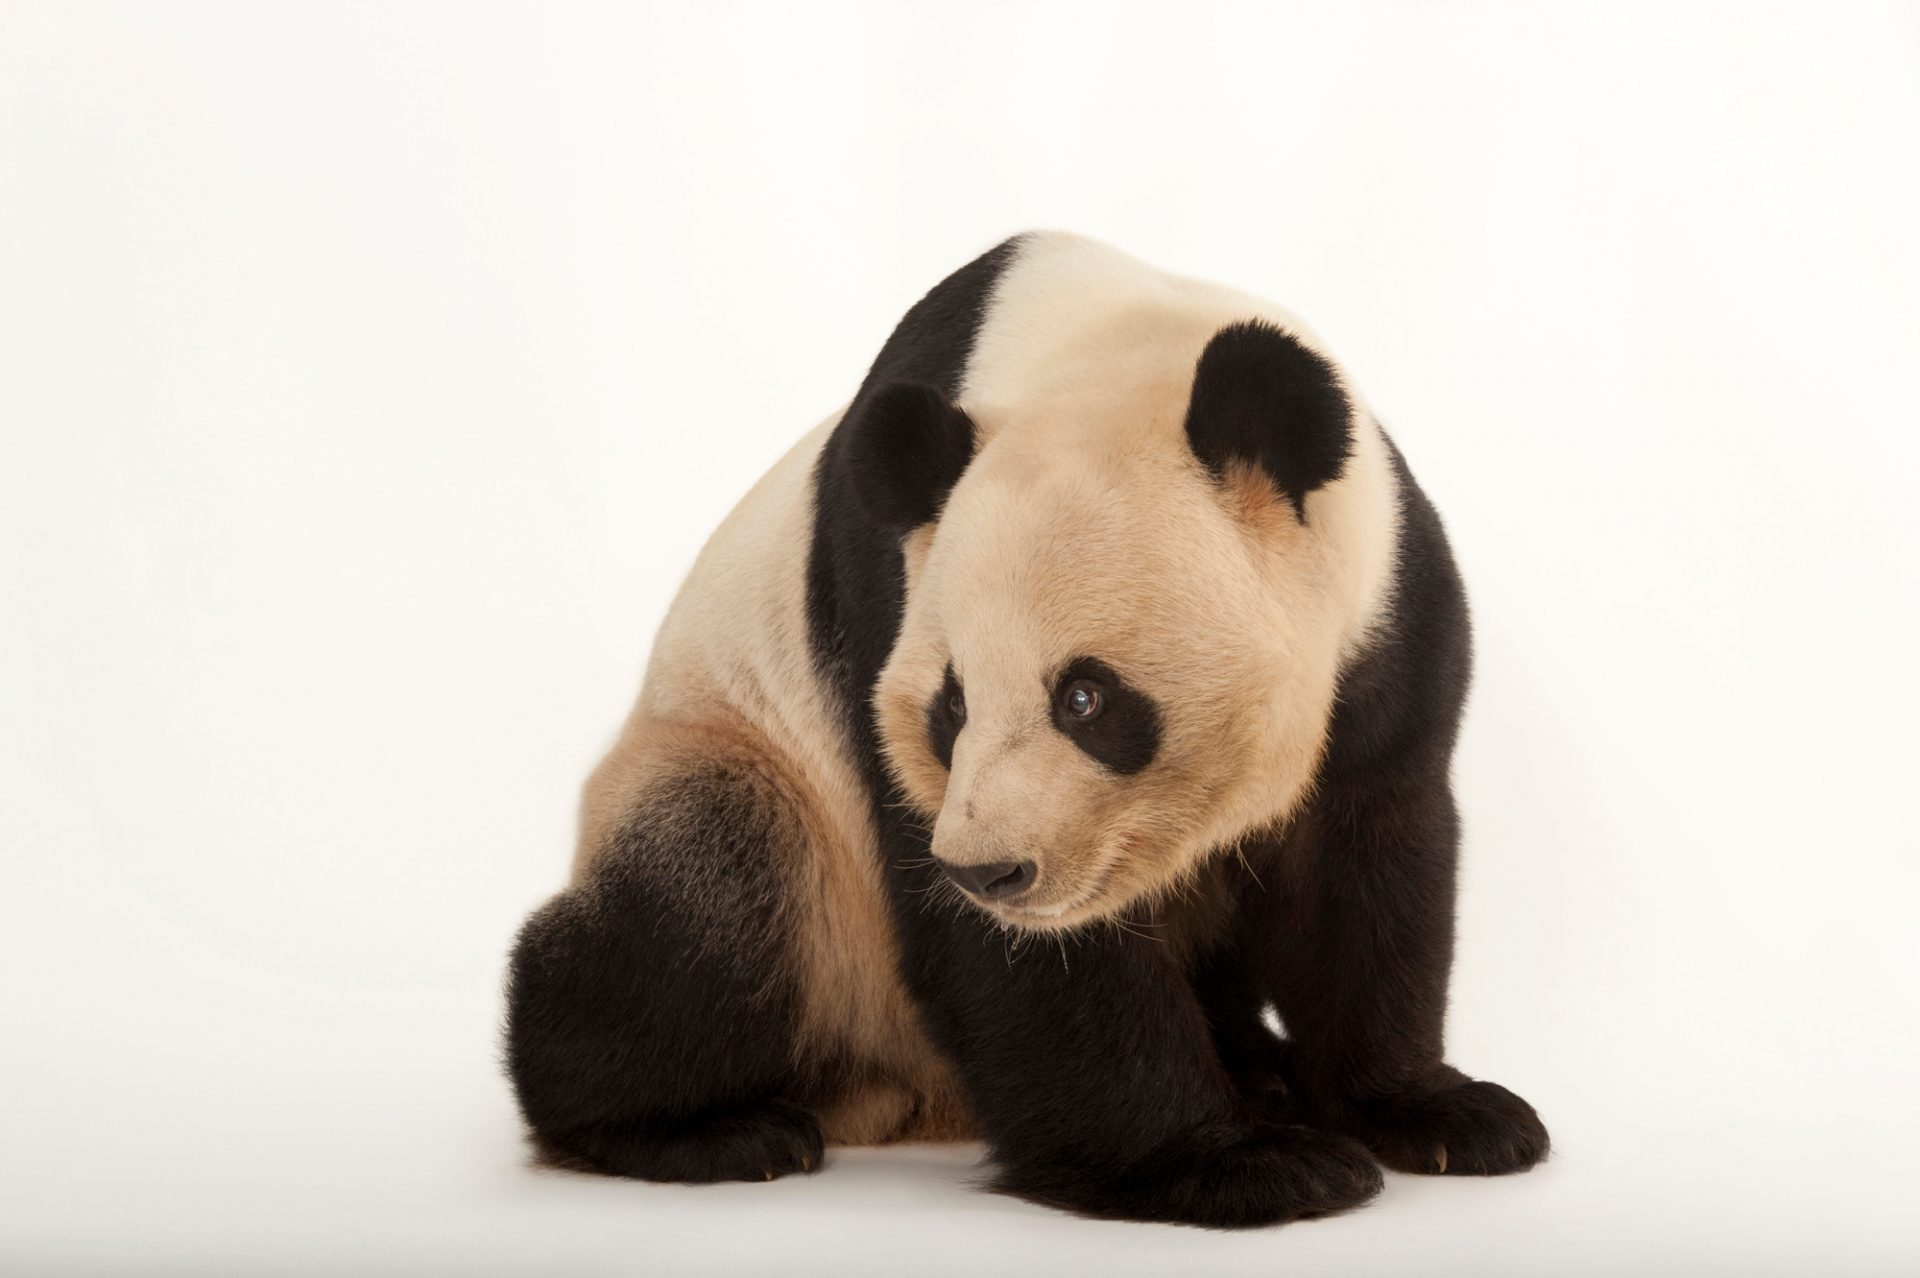 A giant panda (Ailuropoda melanoleuca) at Zoo Atlanta. This endangered (IUCN) and federally endangered species is native to China.